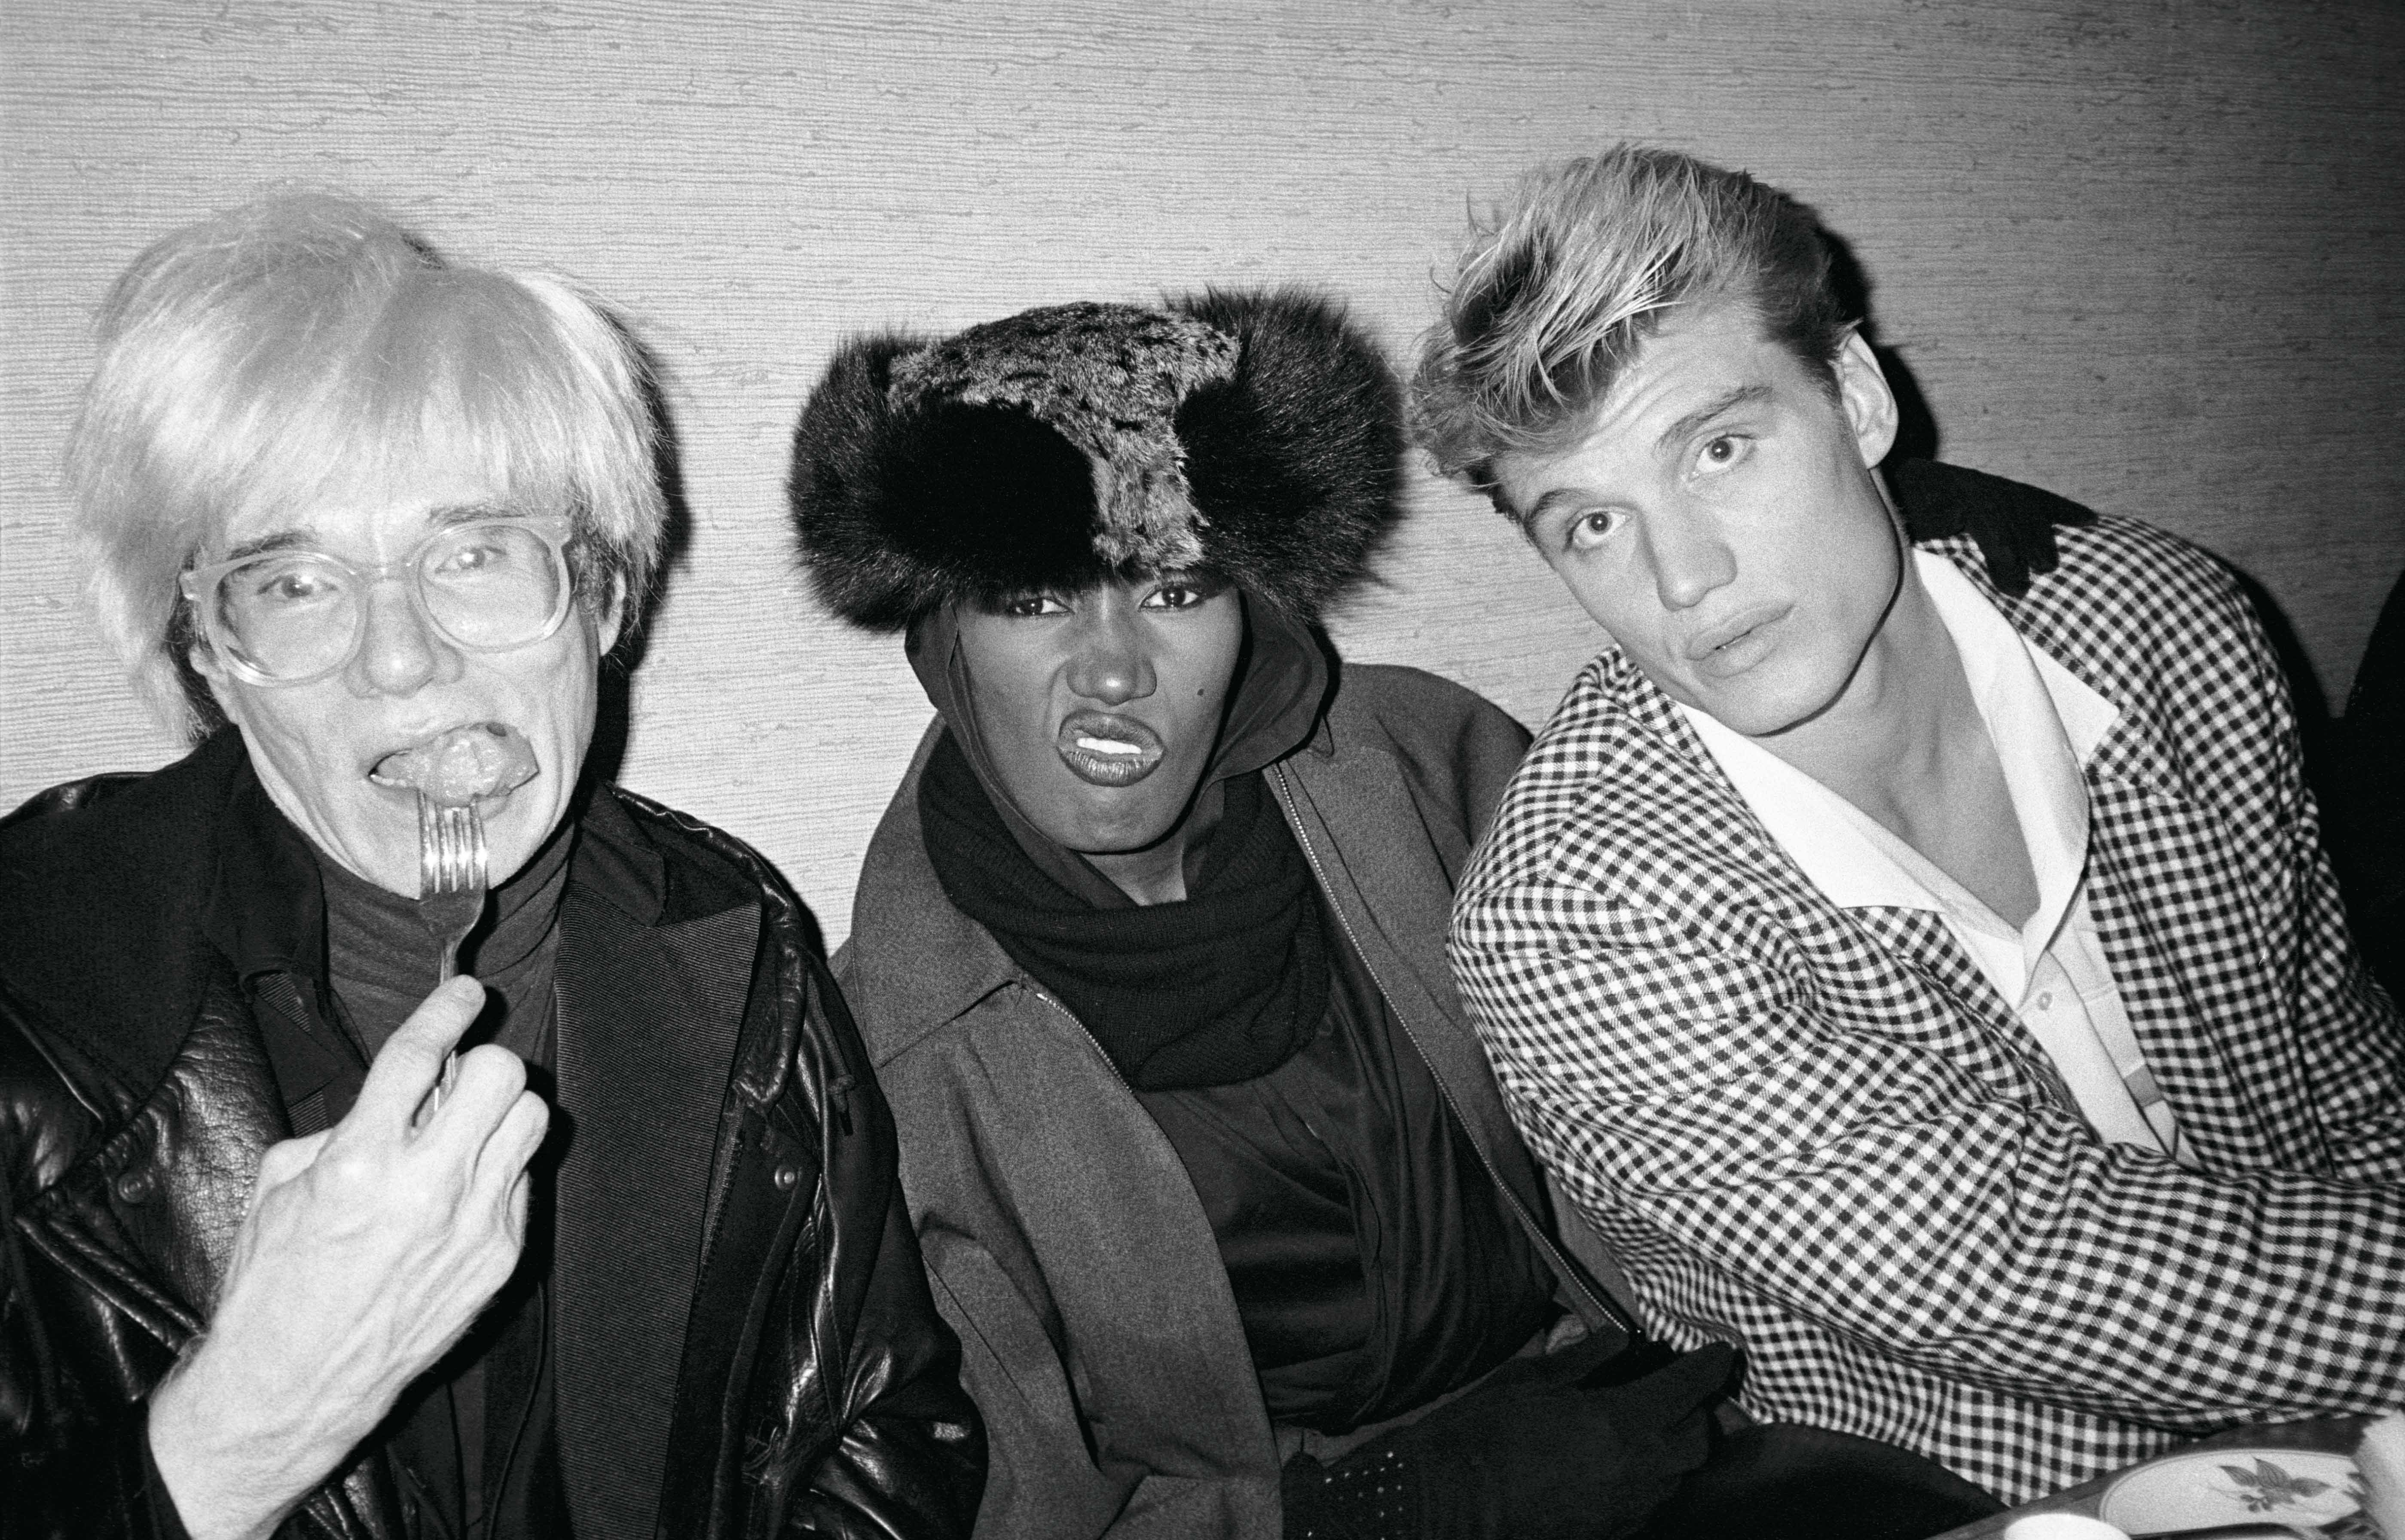 Andy Warhol, Grace Jones and actor Dolph Lundgren at Nippon in 1985, courtesy of Paige Powell. <em>Paige Powell</em> is now available at Gucci Wooster bookstore.